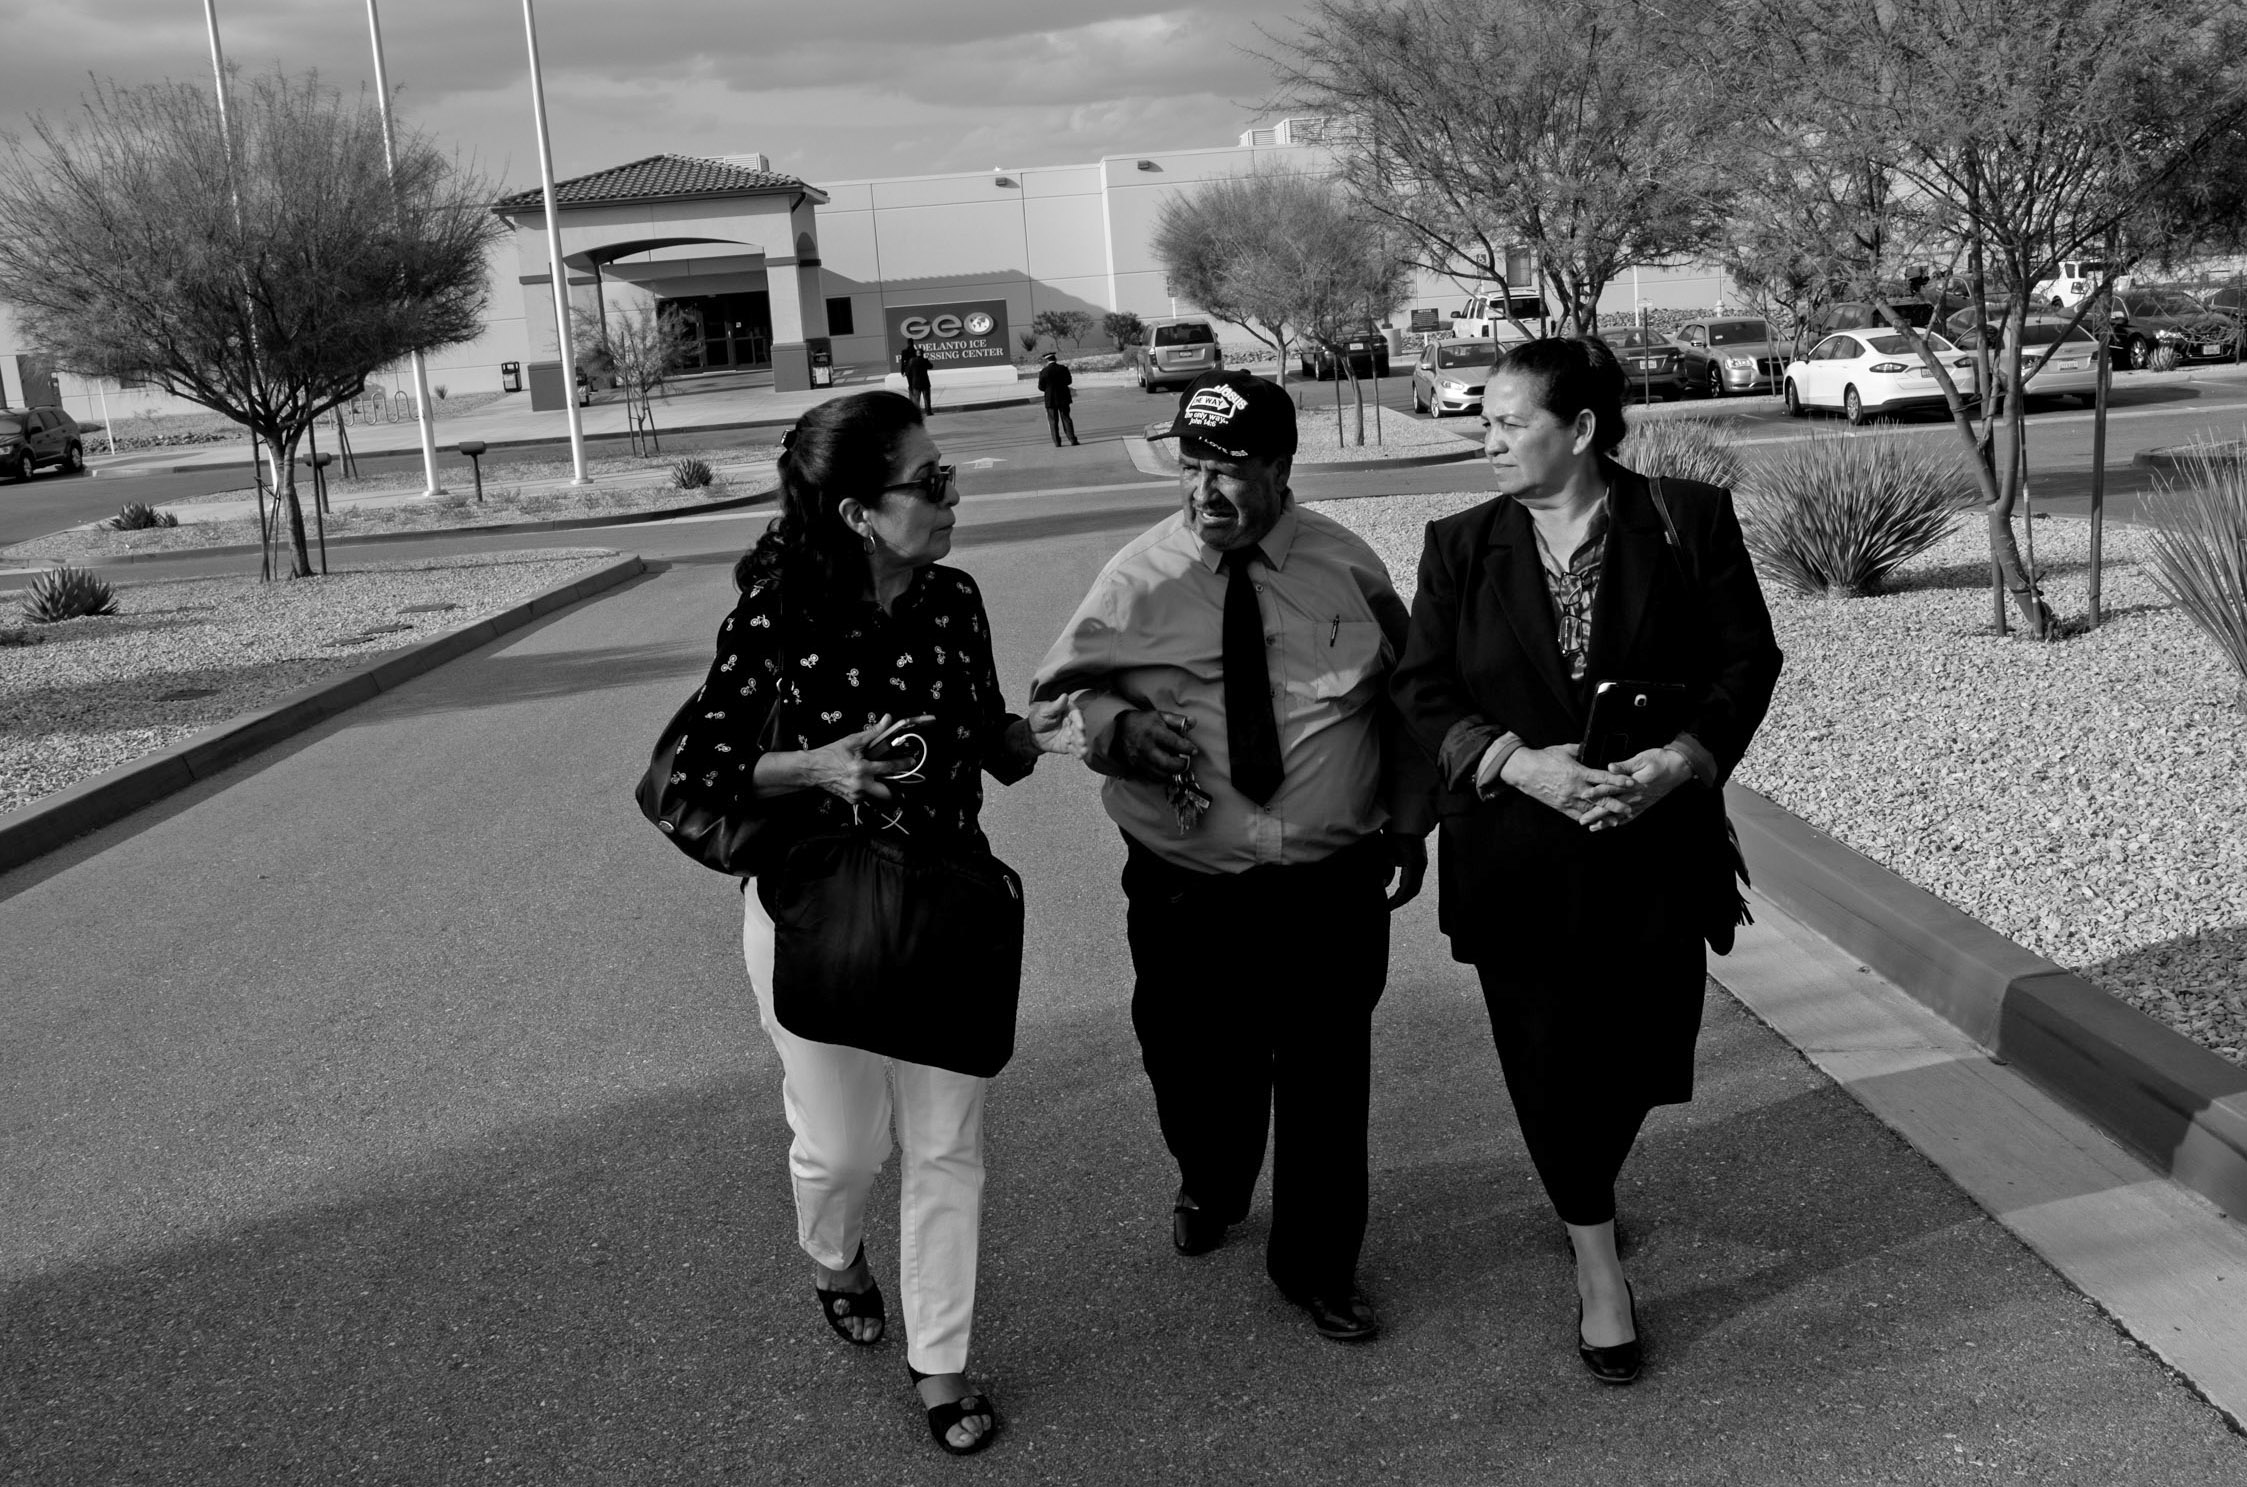 Graciela Alvarado, left, accompanies Jose Garcia, 64, and Martha Garcia, 56, after attending court for their son Jose Benitez Segovia, a U.S. Marine Corps combat veteran who is facing deportation to El Salvador, at the Adelanto Detention Facility in Adelanto, Calif., Monday, Oct. 1, 2018. (Photo by Joel Angel Juárez/GroundTruth)